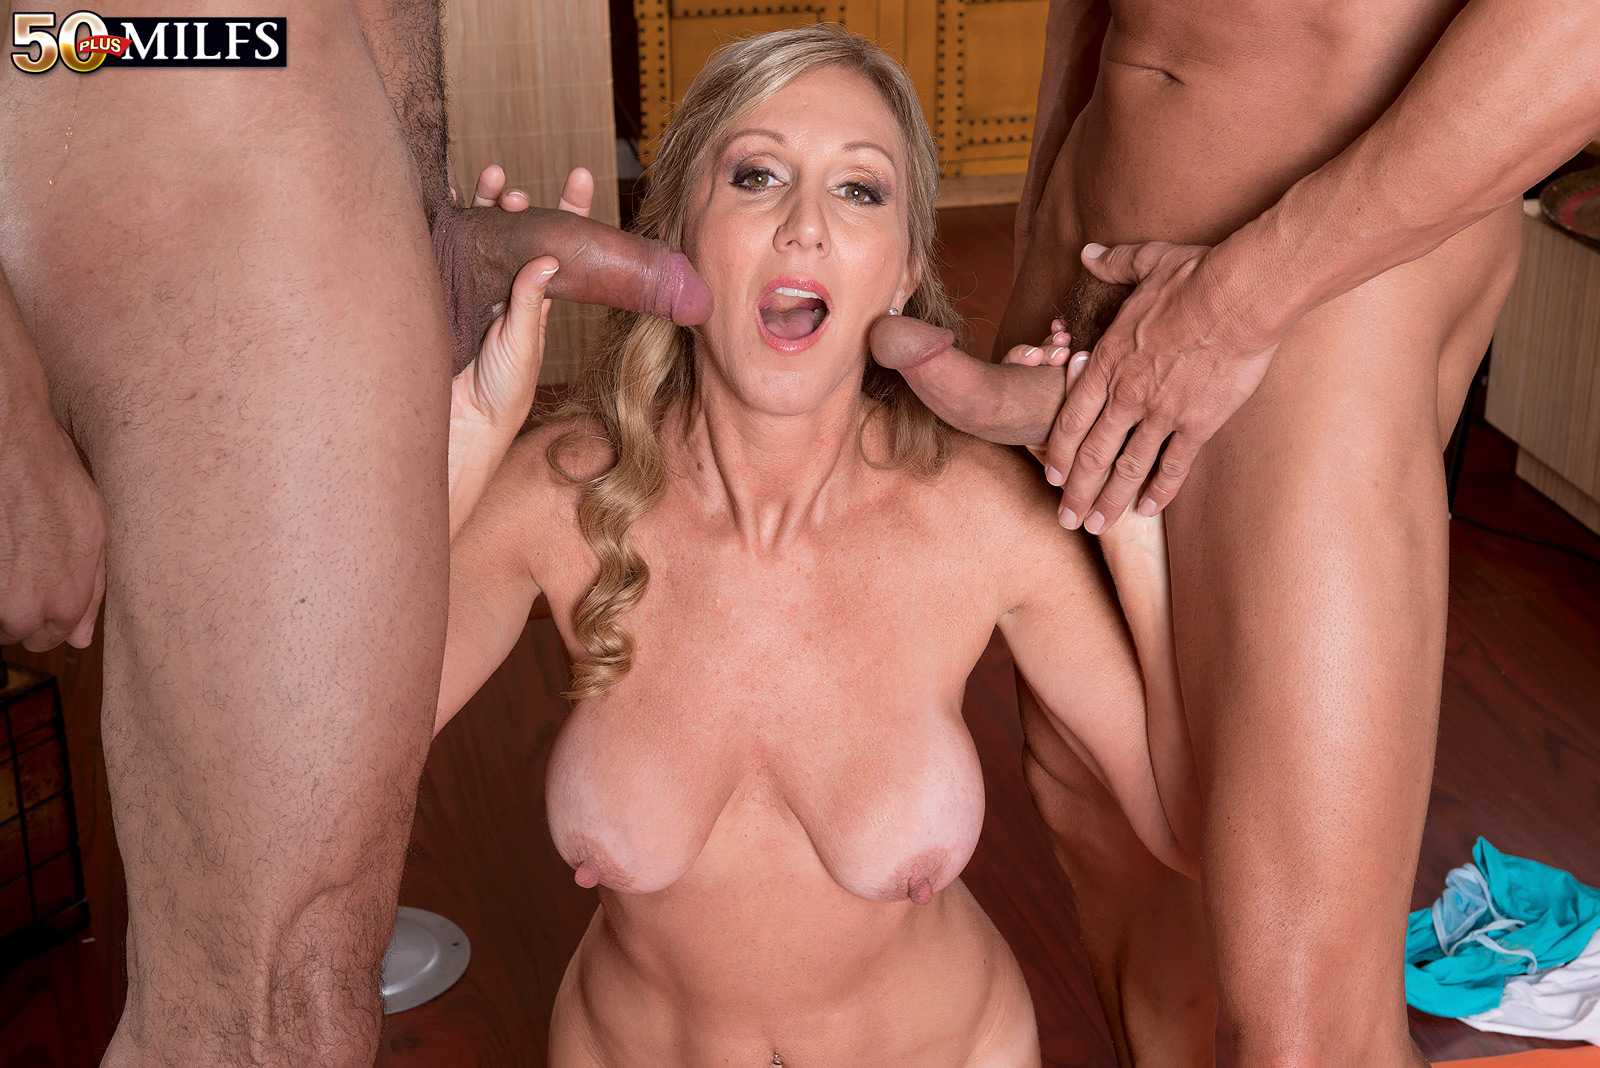 Over 50 milf porn movies